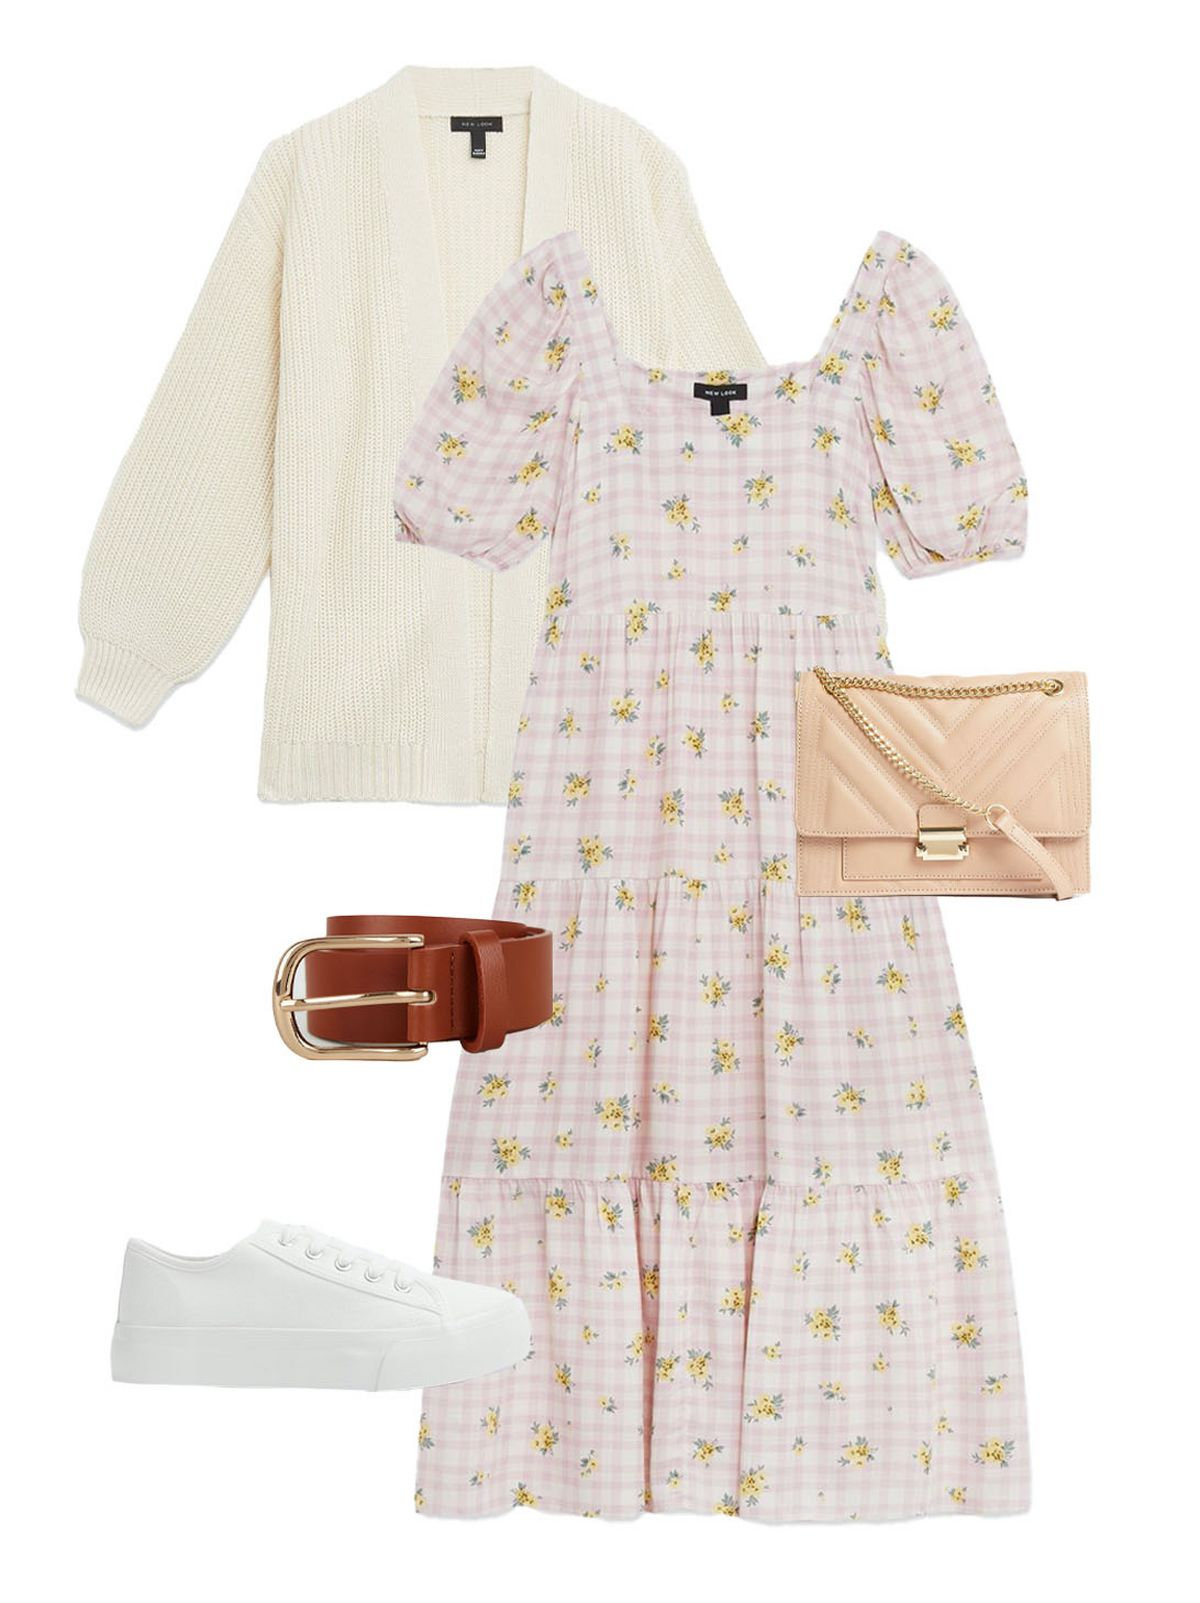 Women's Pink Check Floral Square Neck Tiered Midi Dress, Women's Off White Chunky Knit Puff Sleeve Cardigan, Women's Pale Pink Chevron Leather-Look Cross Body Bag, Women's Tan Leather-Look Hip Belt, Women's White Canvas Lace Up Chunky Trainers